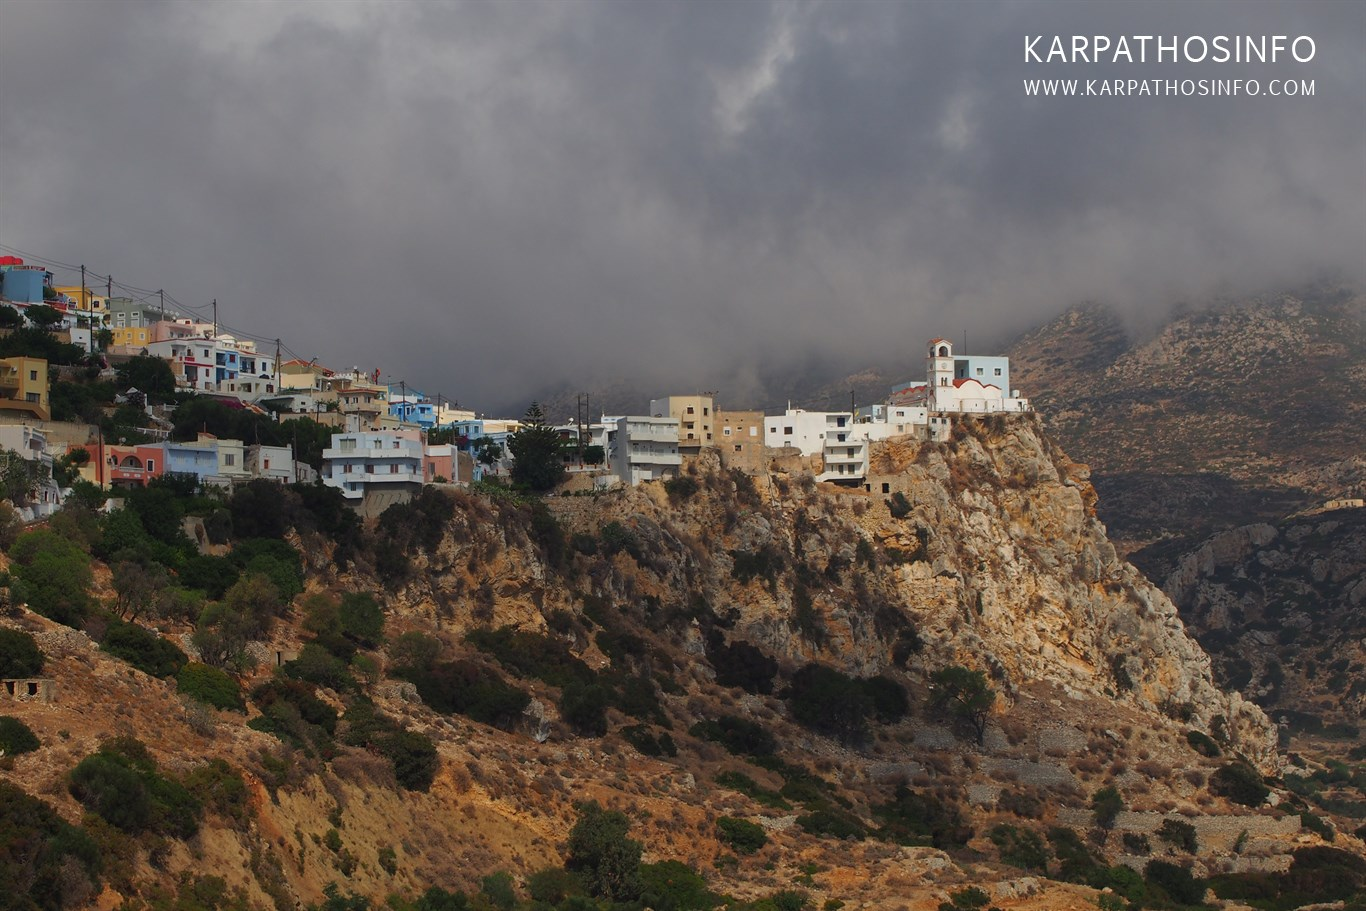 Karpathos island in winter (November, December, January)